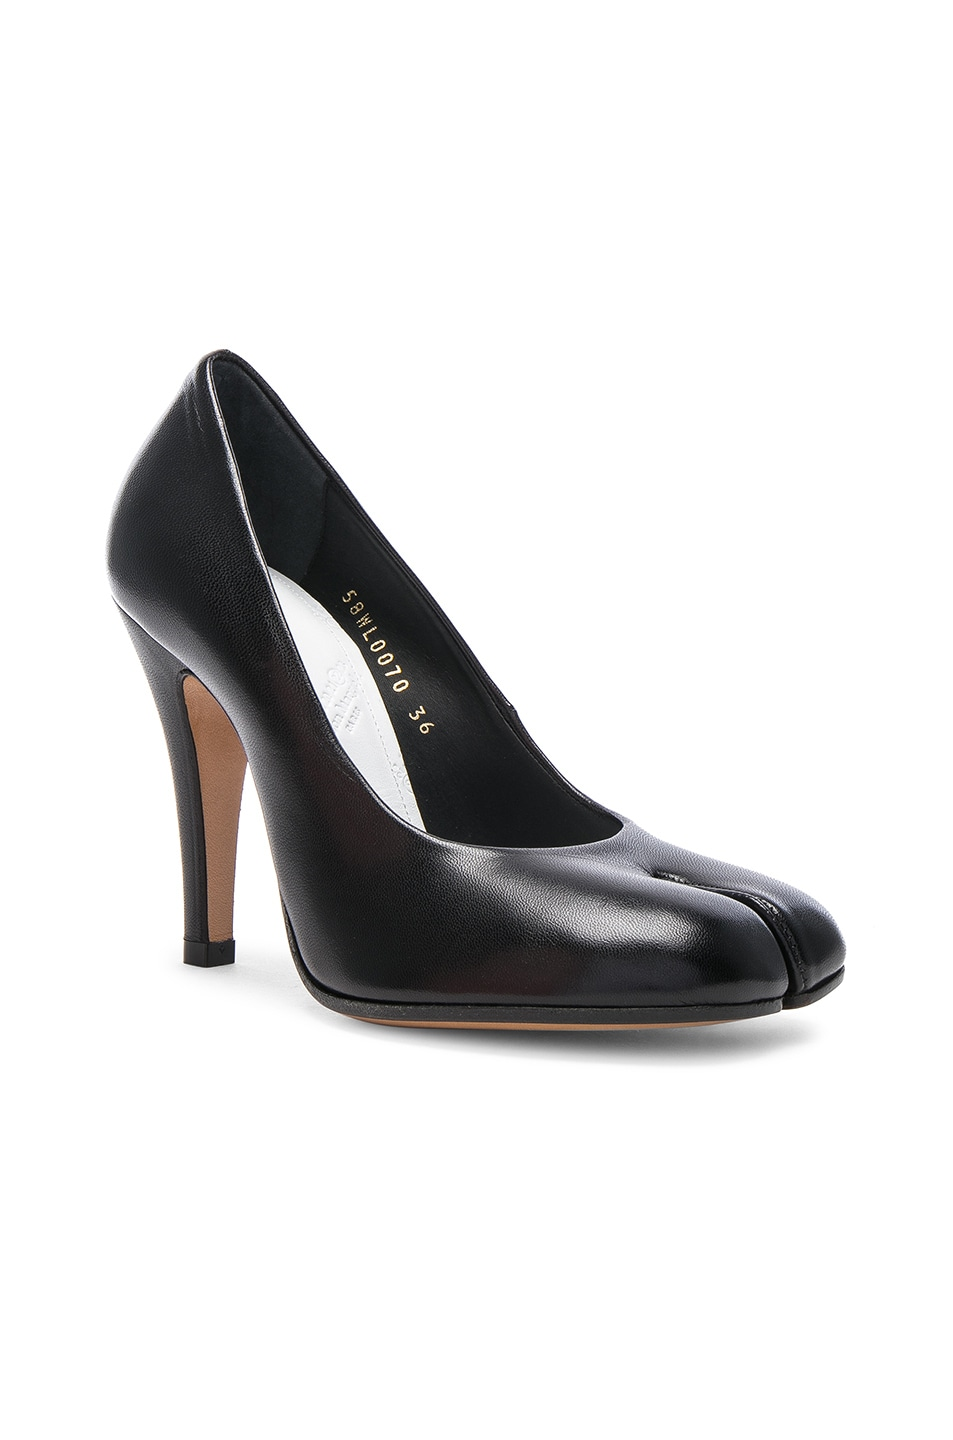 Image 2 of Maison Margiela Leather Tabi Heels in Black